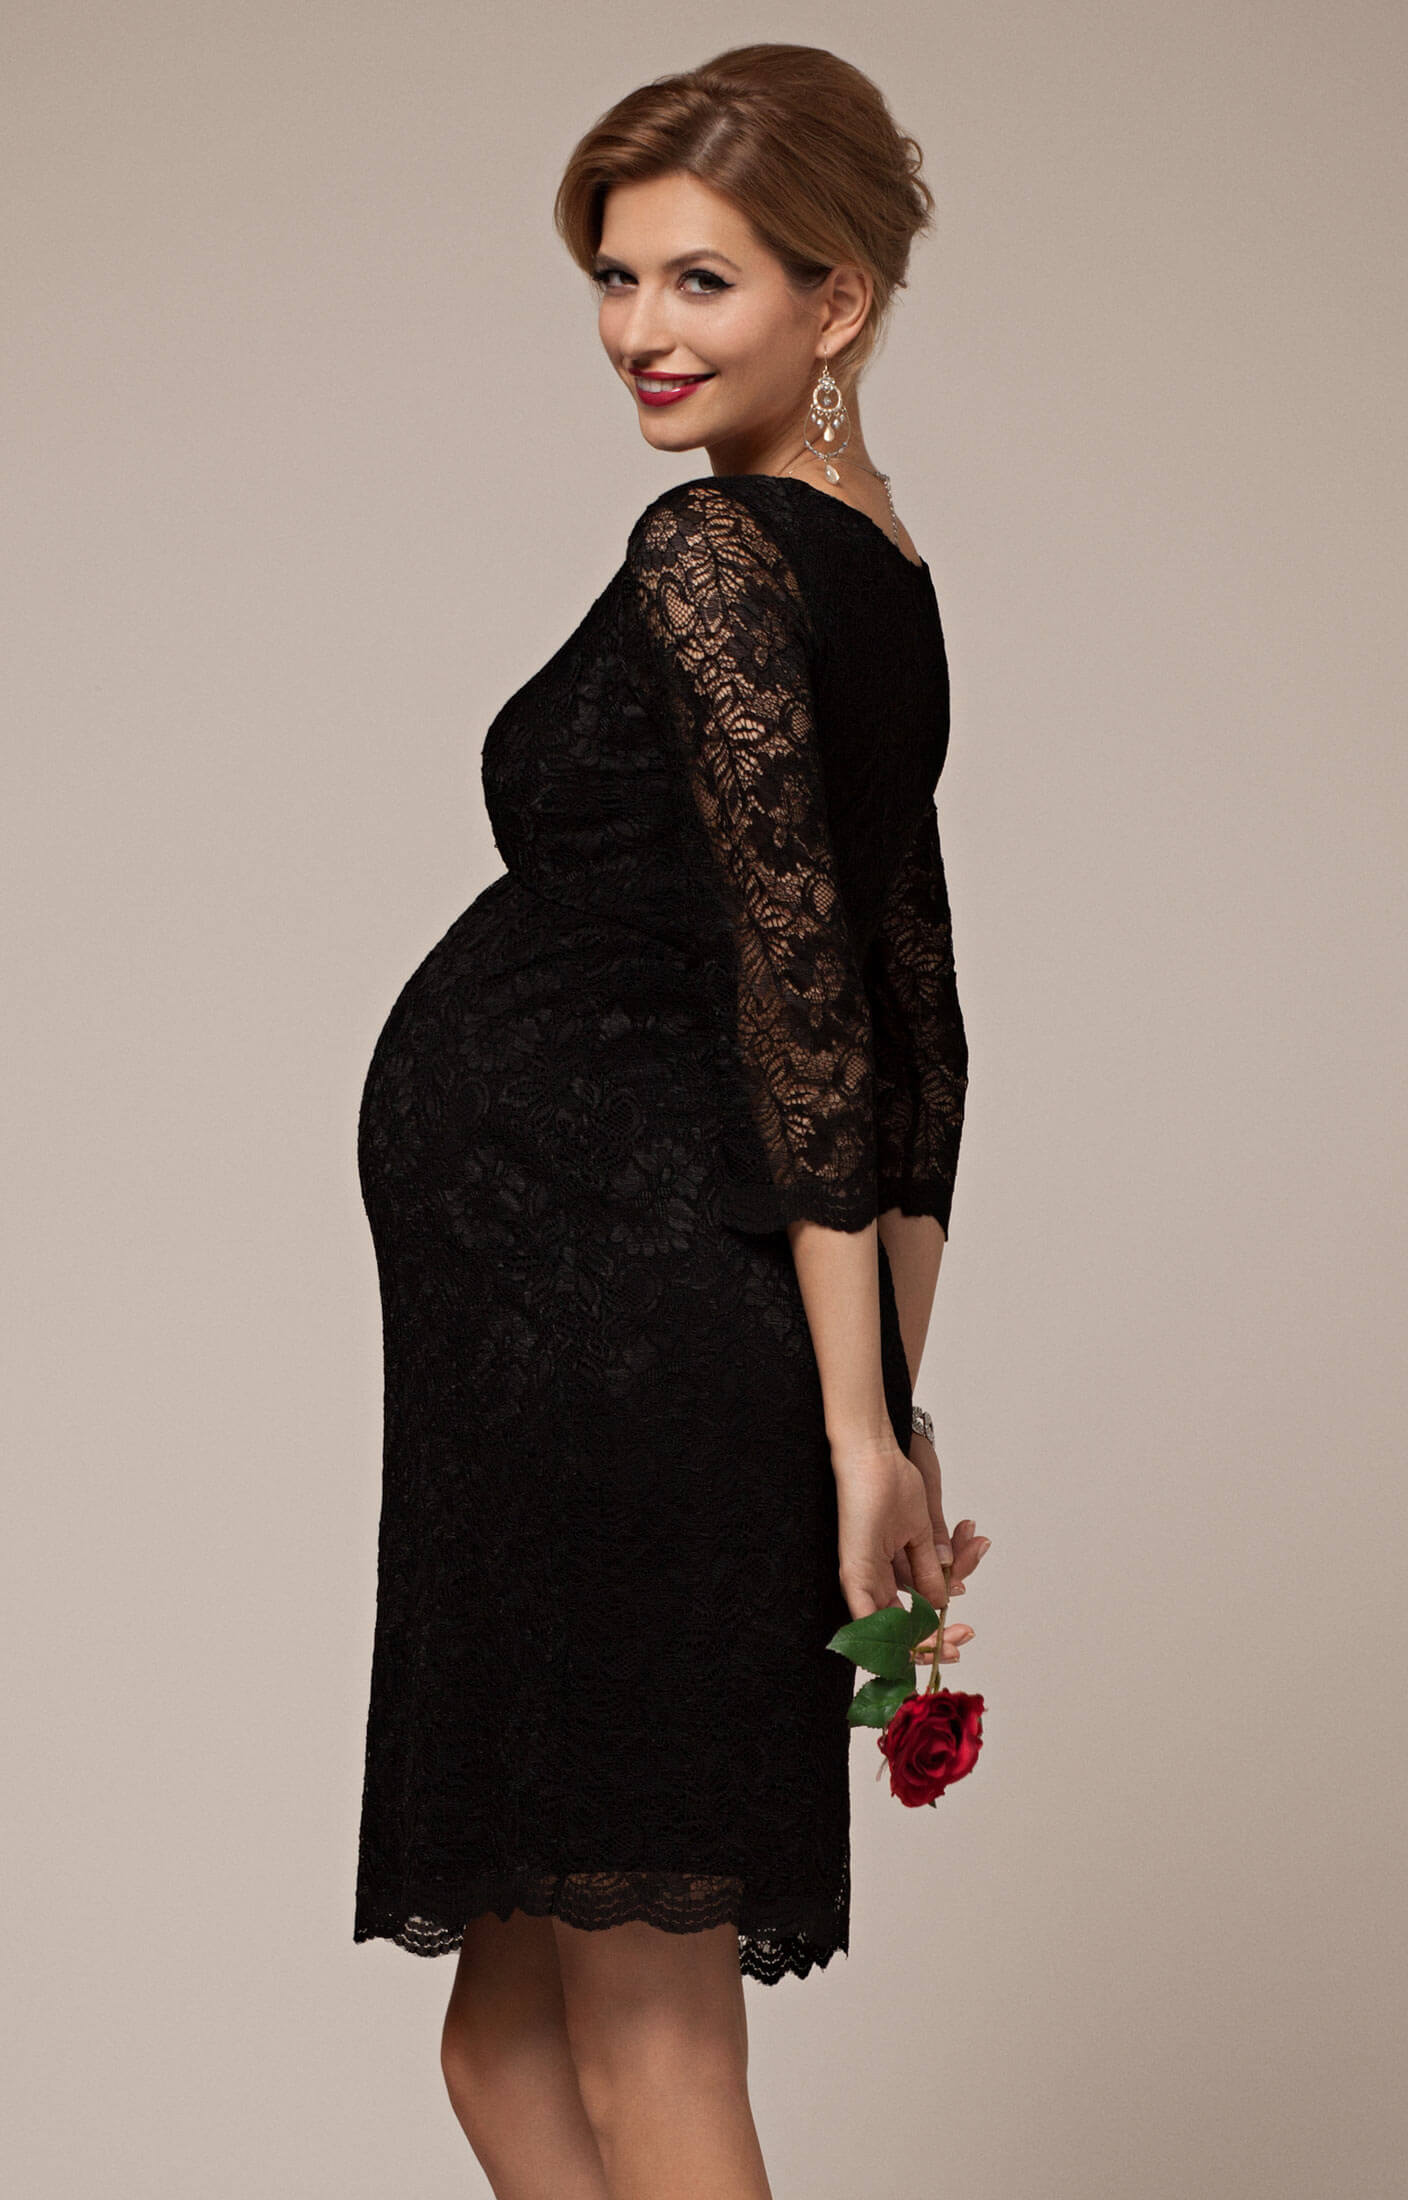 Chloe lace maternity dress black maternity wedding dresses chloe lace maternity dress black maternity wedding dresses evening wear and party clothes by tiffany rose us ombrellifo Gallery